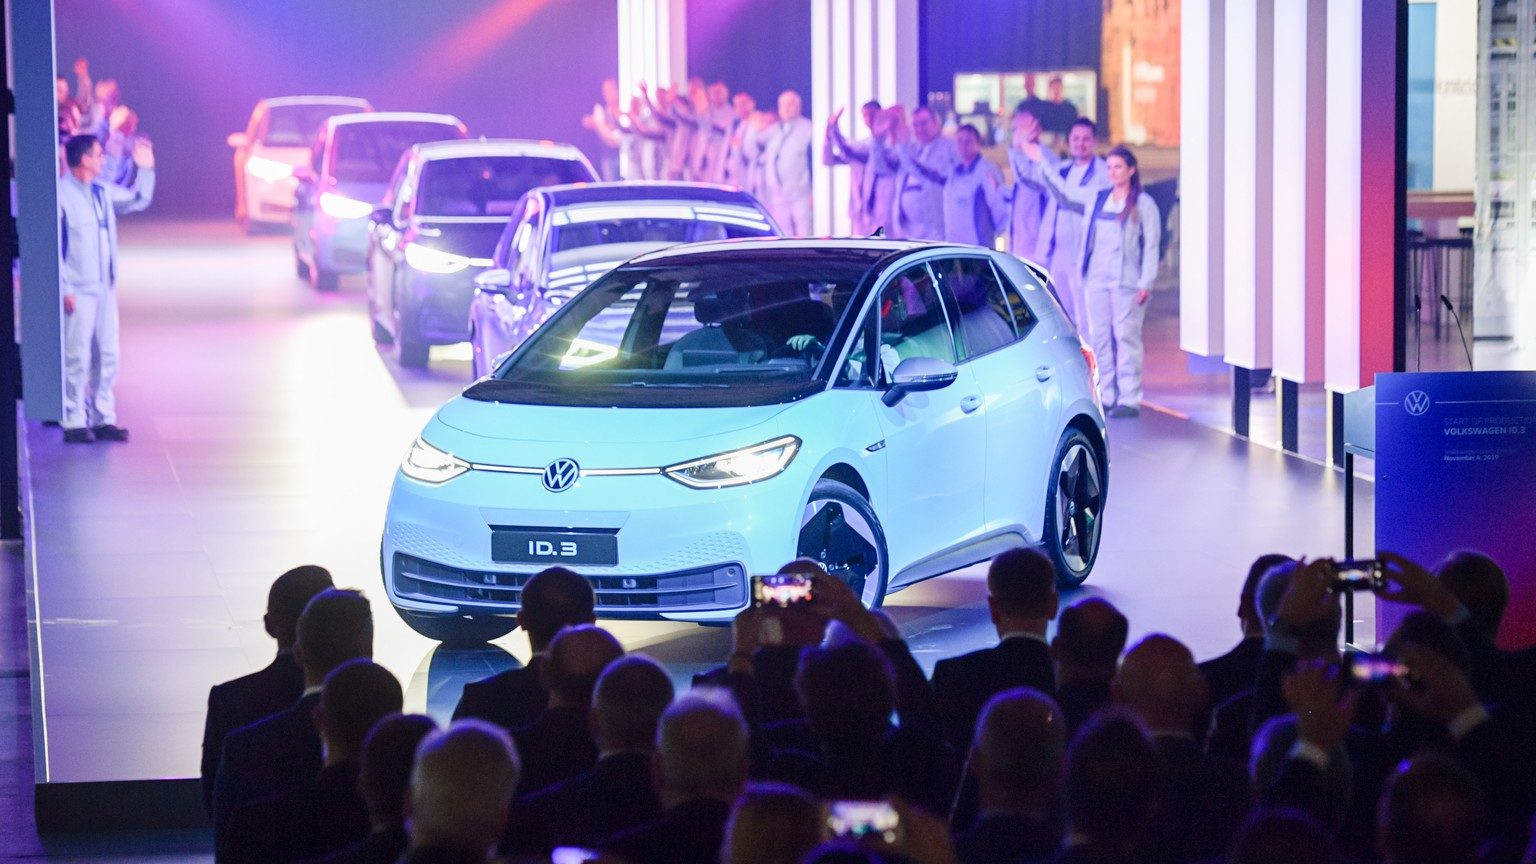 epa07971807 ID.3 cars during a presentation on the occasion of the start of the production of the new electric car Volkswagen ID.3 at the Volkswagen (VW) vehicle factory in Zwickau, Germany 04 November 2019. The ID.3 is Volkswagen's first product in an affordable range of full-electric vehicles based on the MEB-platform. The ID.3 will be available with three battery options: standard range, mid range and long range. Production starts in November 2019 and customers will begin taking delivery of their cars in the summer of 2020.  EPA/JENS SCHLUETER